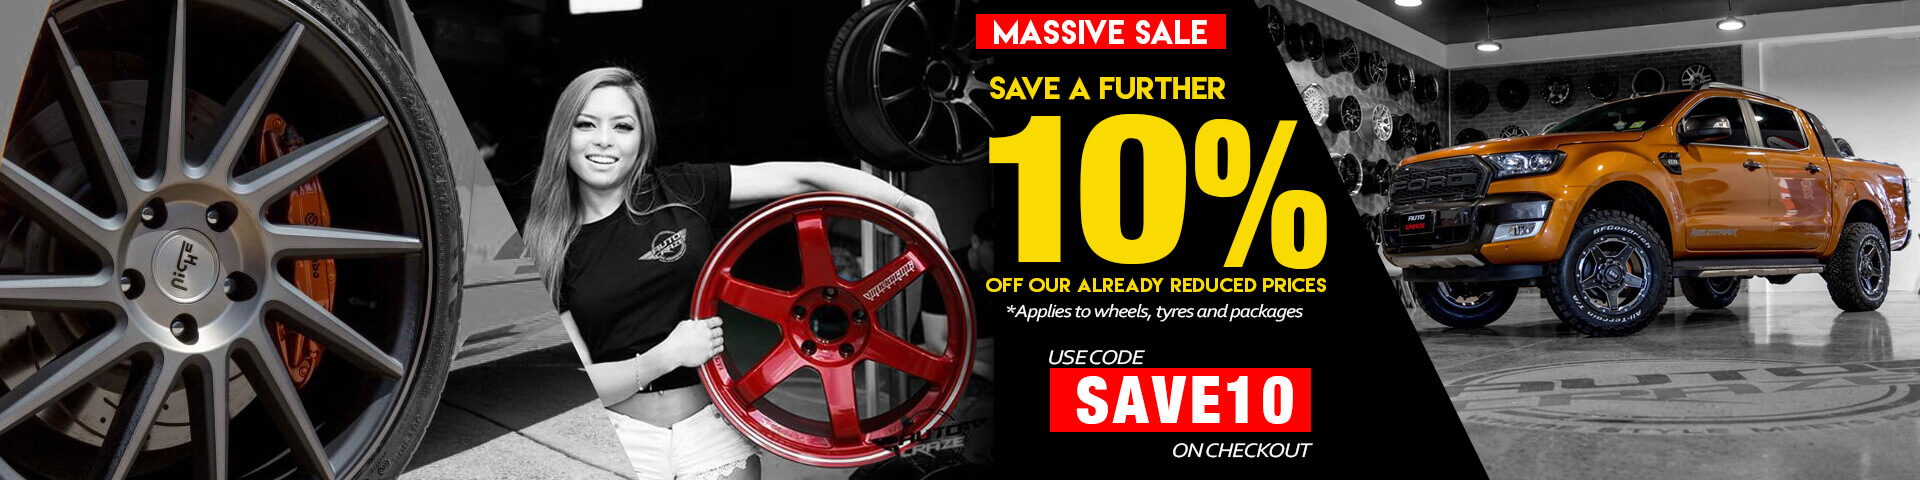 Save 10% for all wheels and packages | Autocraze